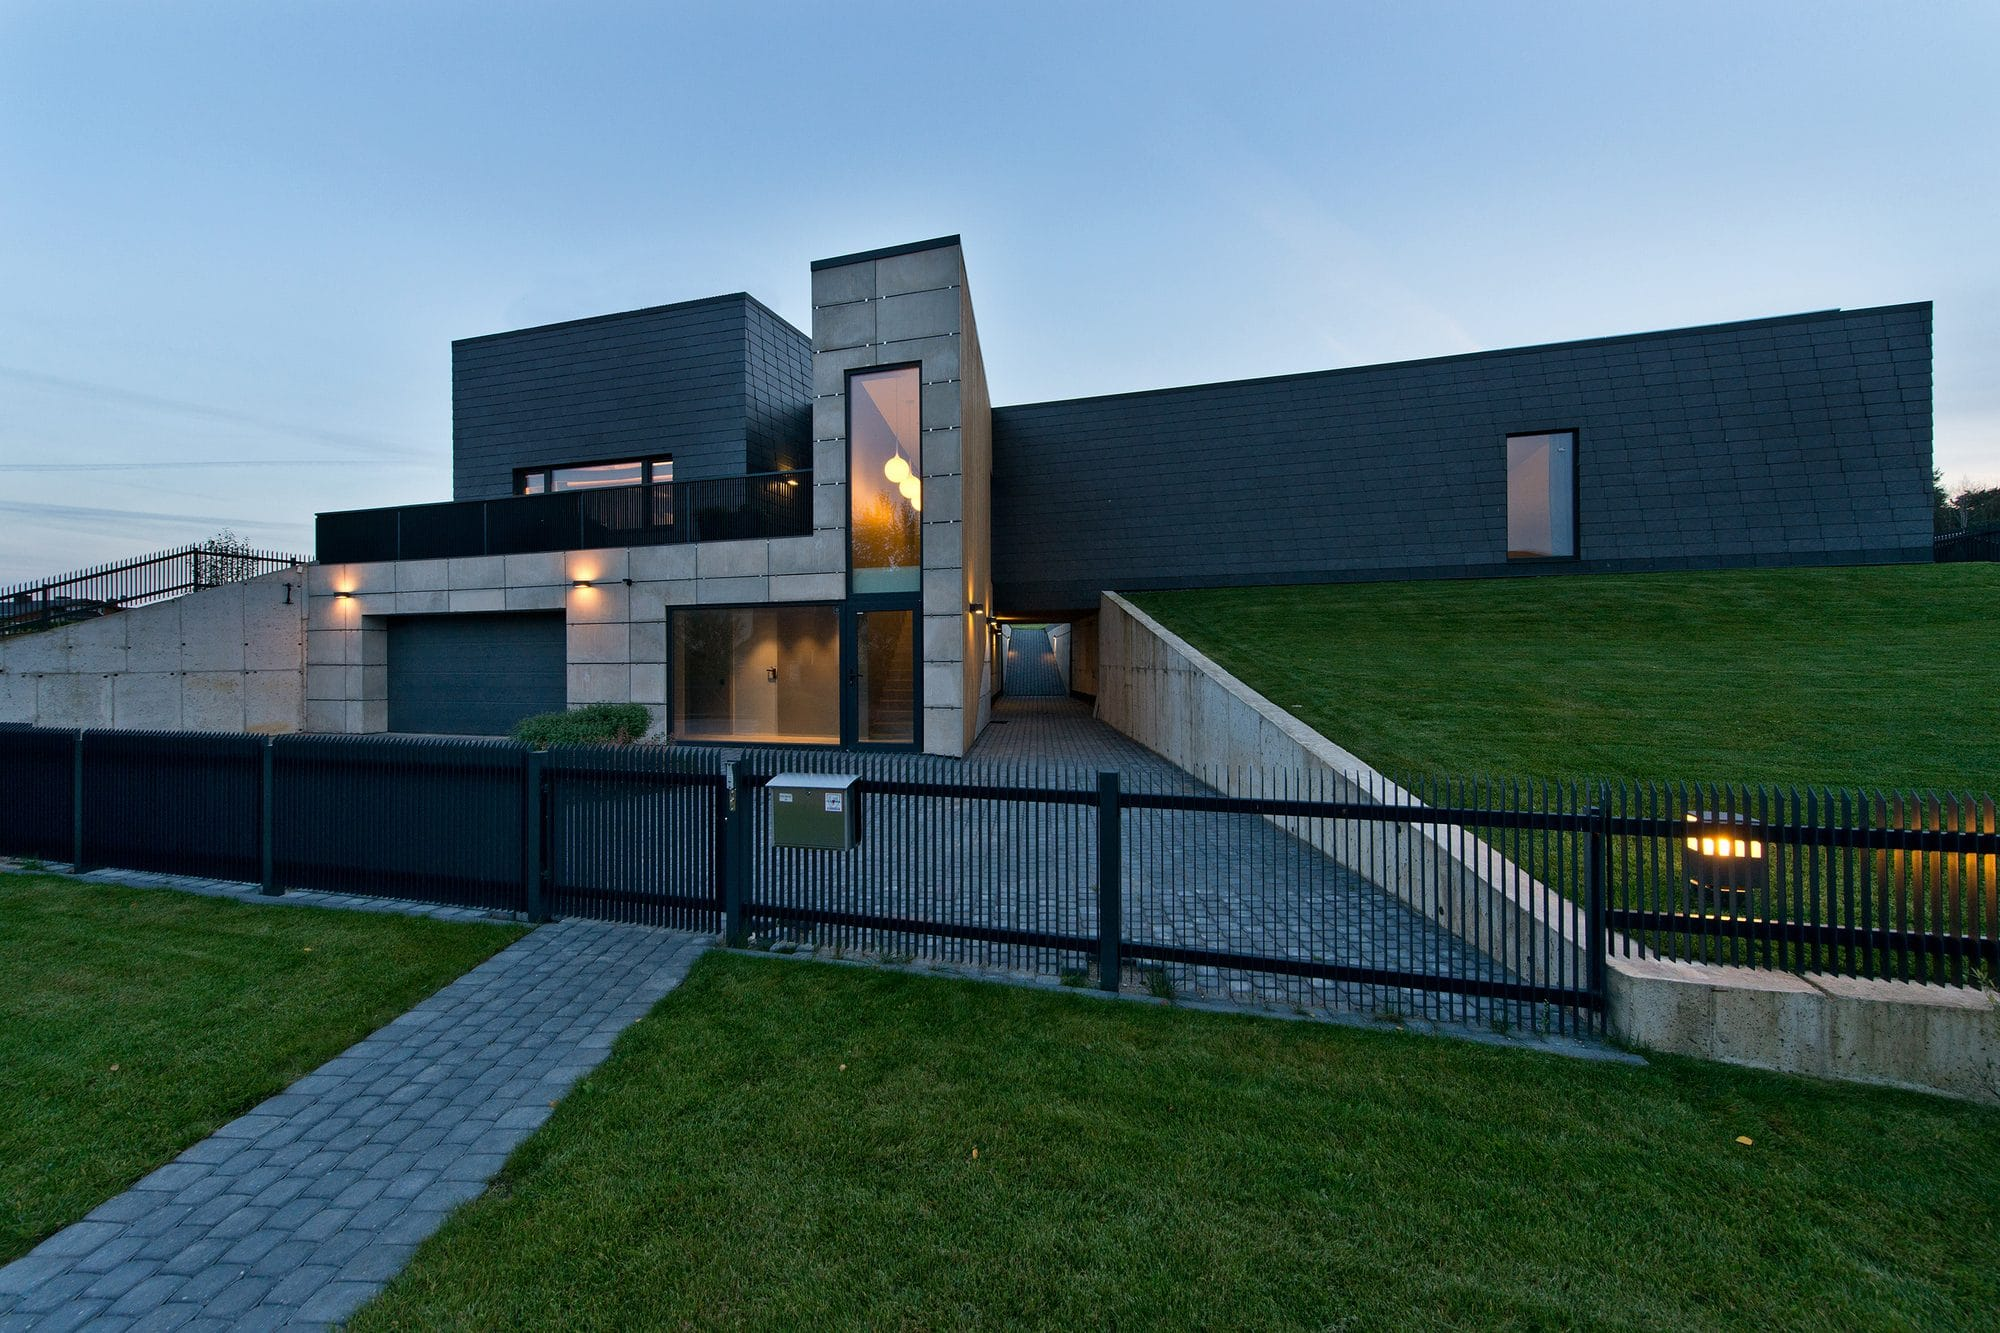 Современный дом Black House в Вильнюсе, Литва от бюро Laurynas Žakevičius architects, HQ architecture, HQarch, HQ arch, high quality architecture